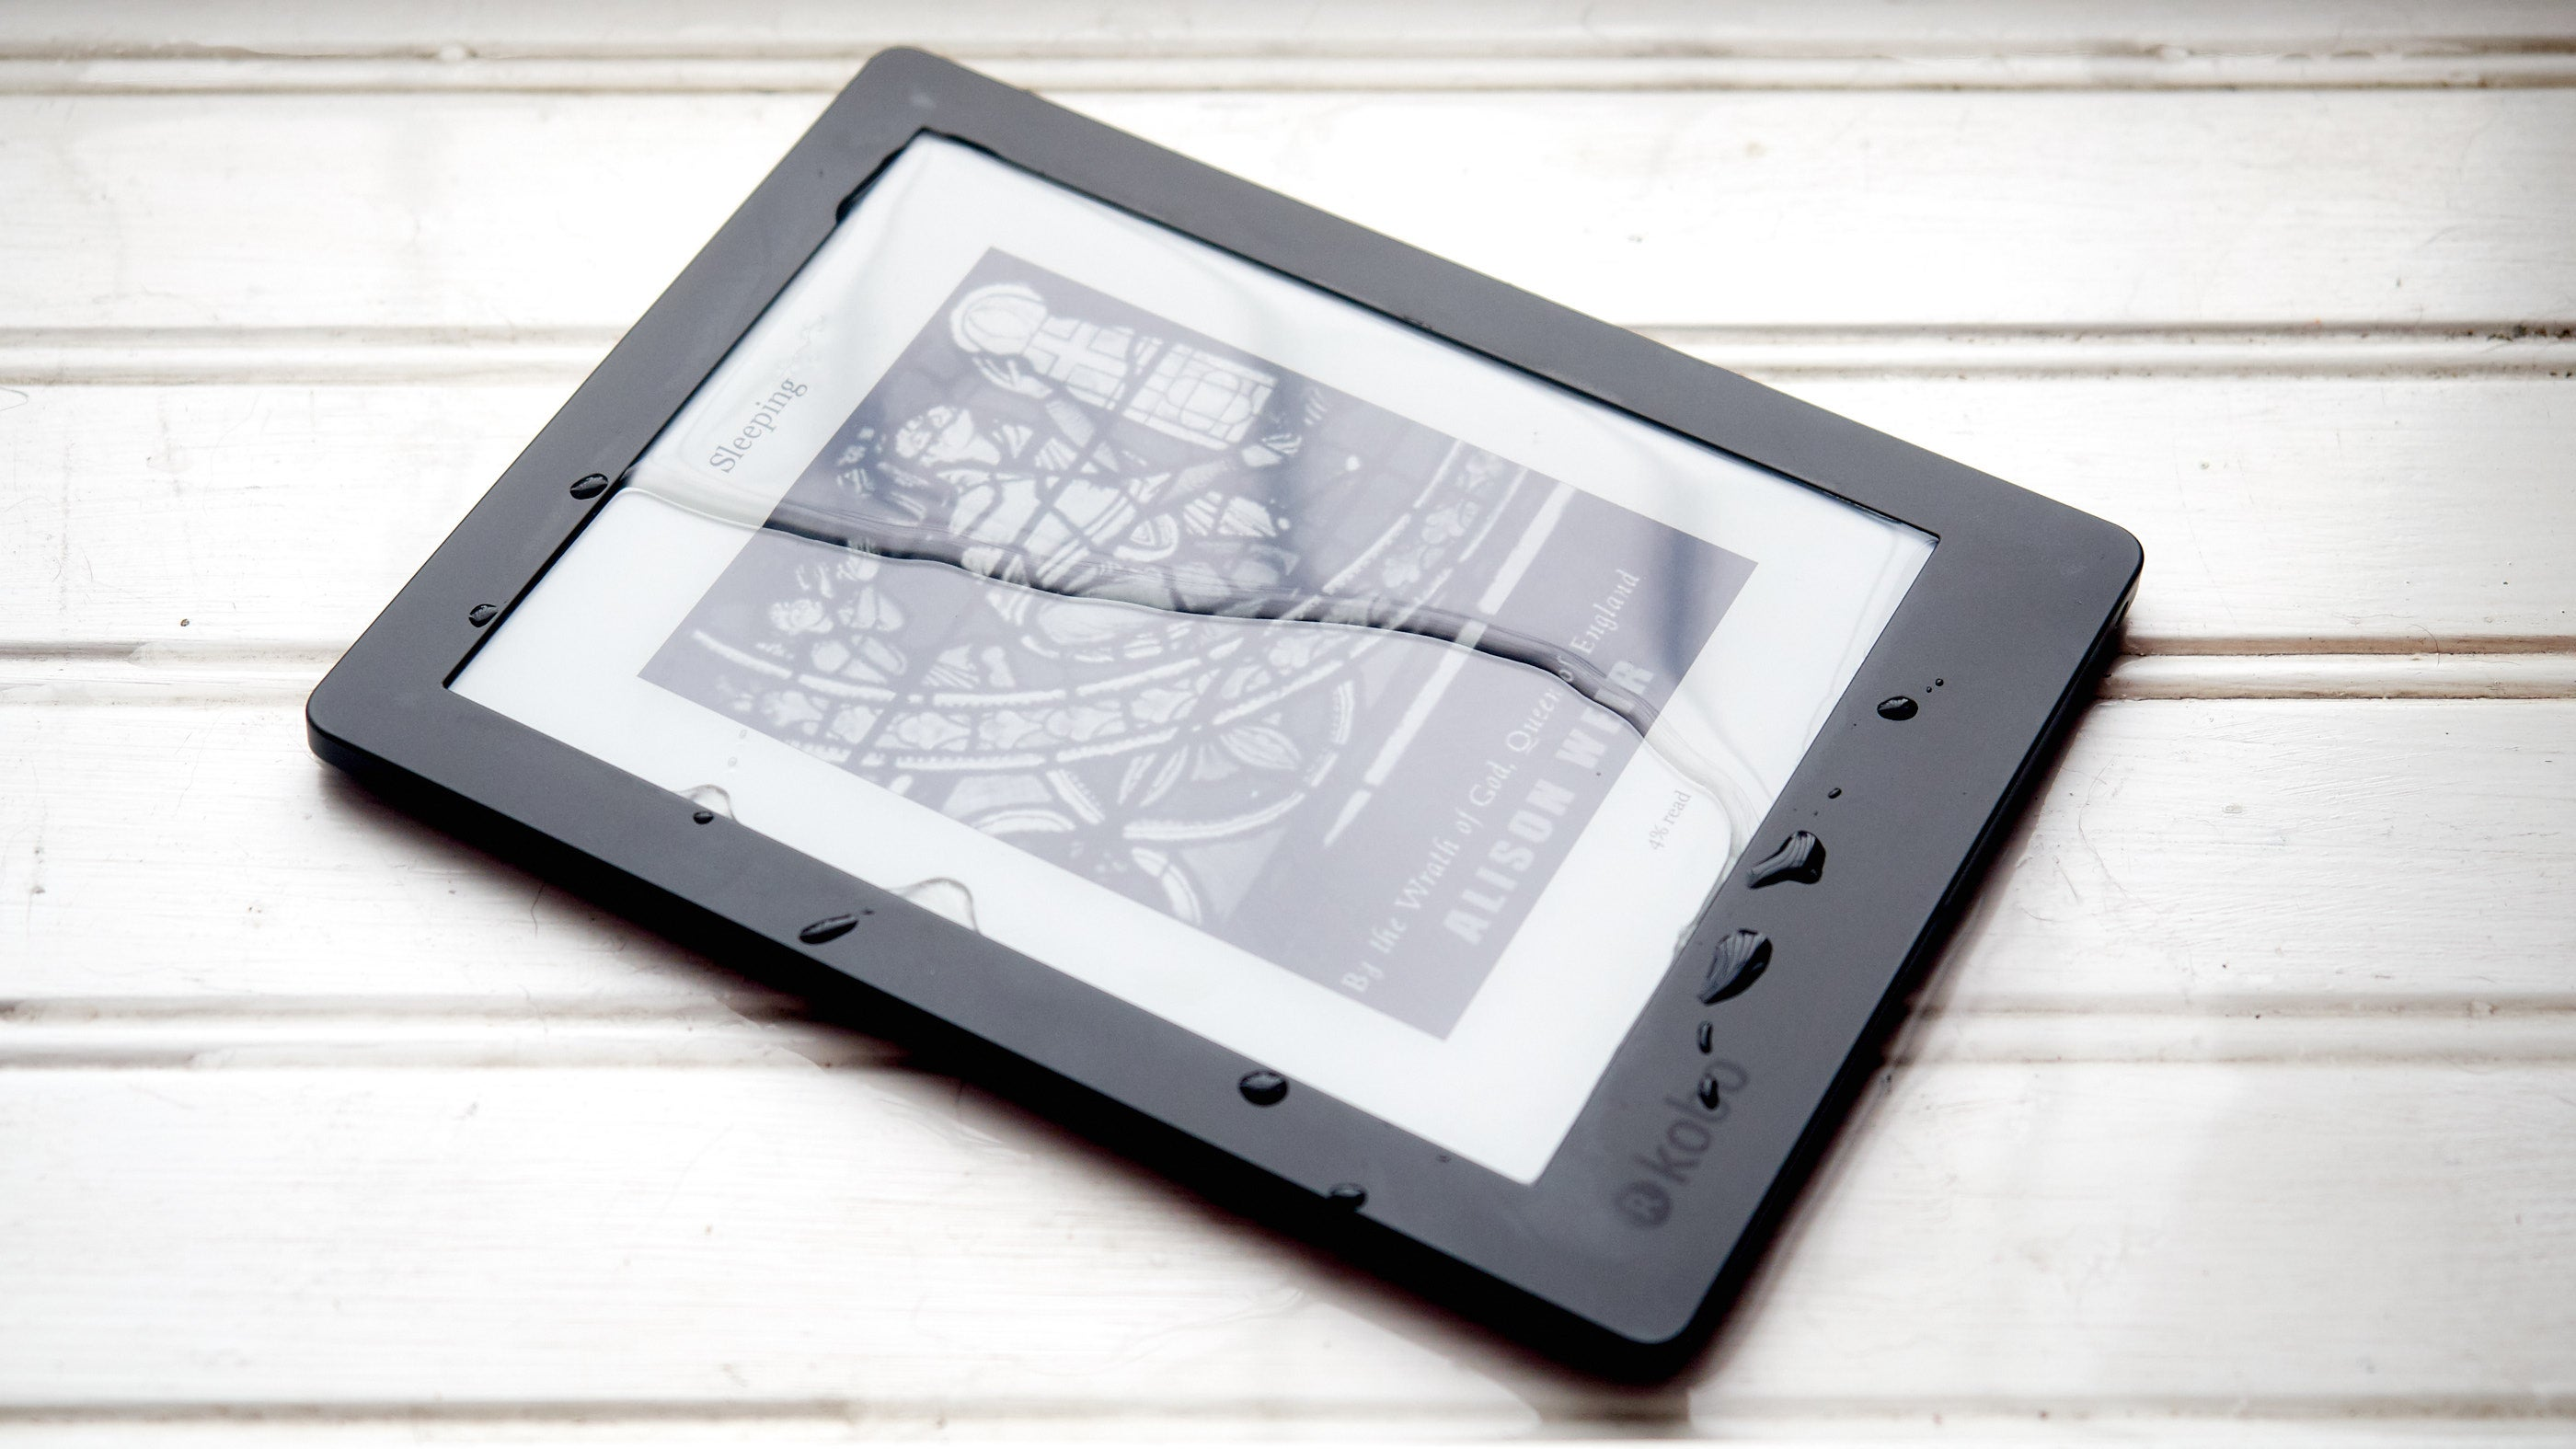 Amazon's Kindle Is King, So Why Would I Buy This Other E